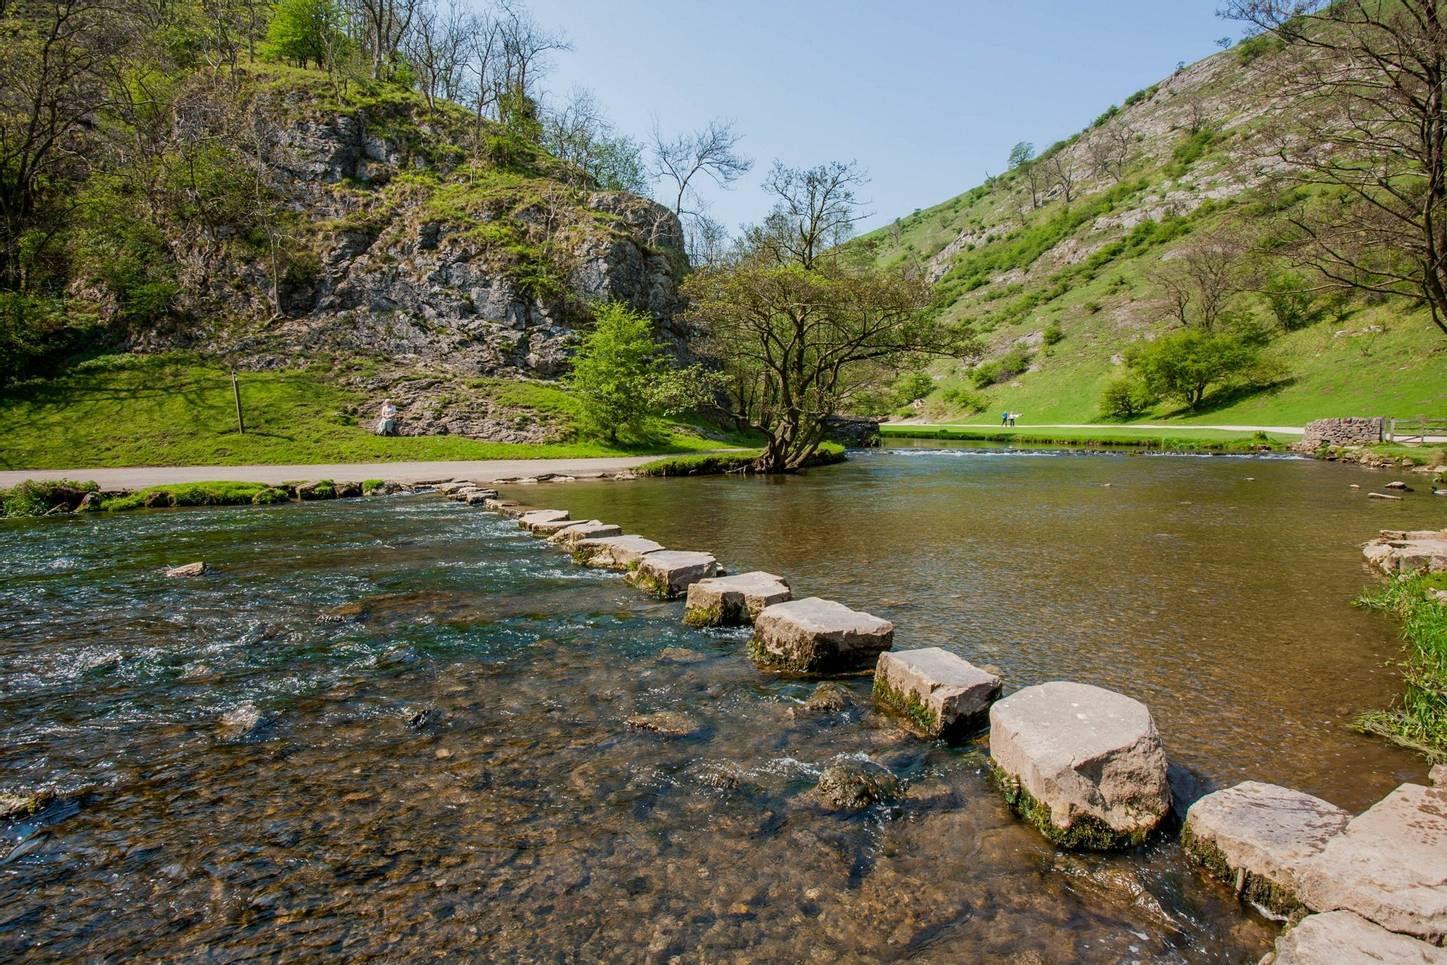 Dovedale Gorge